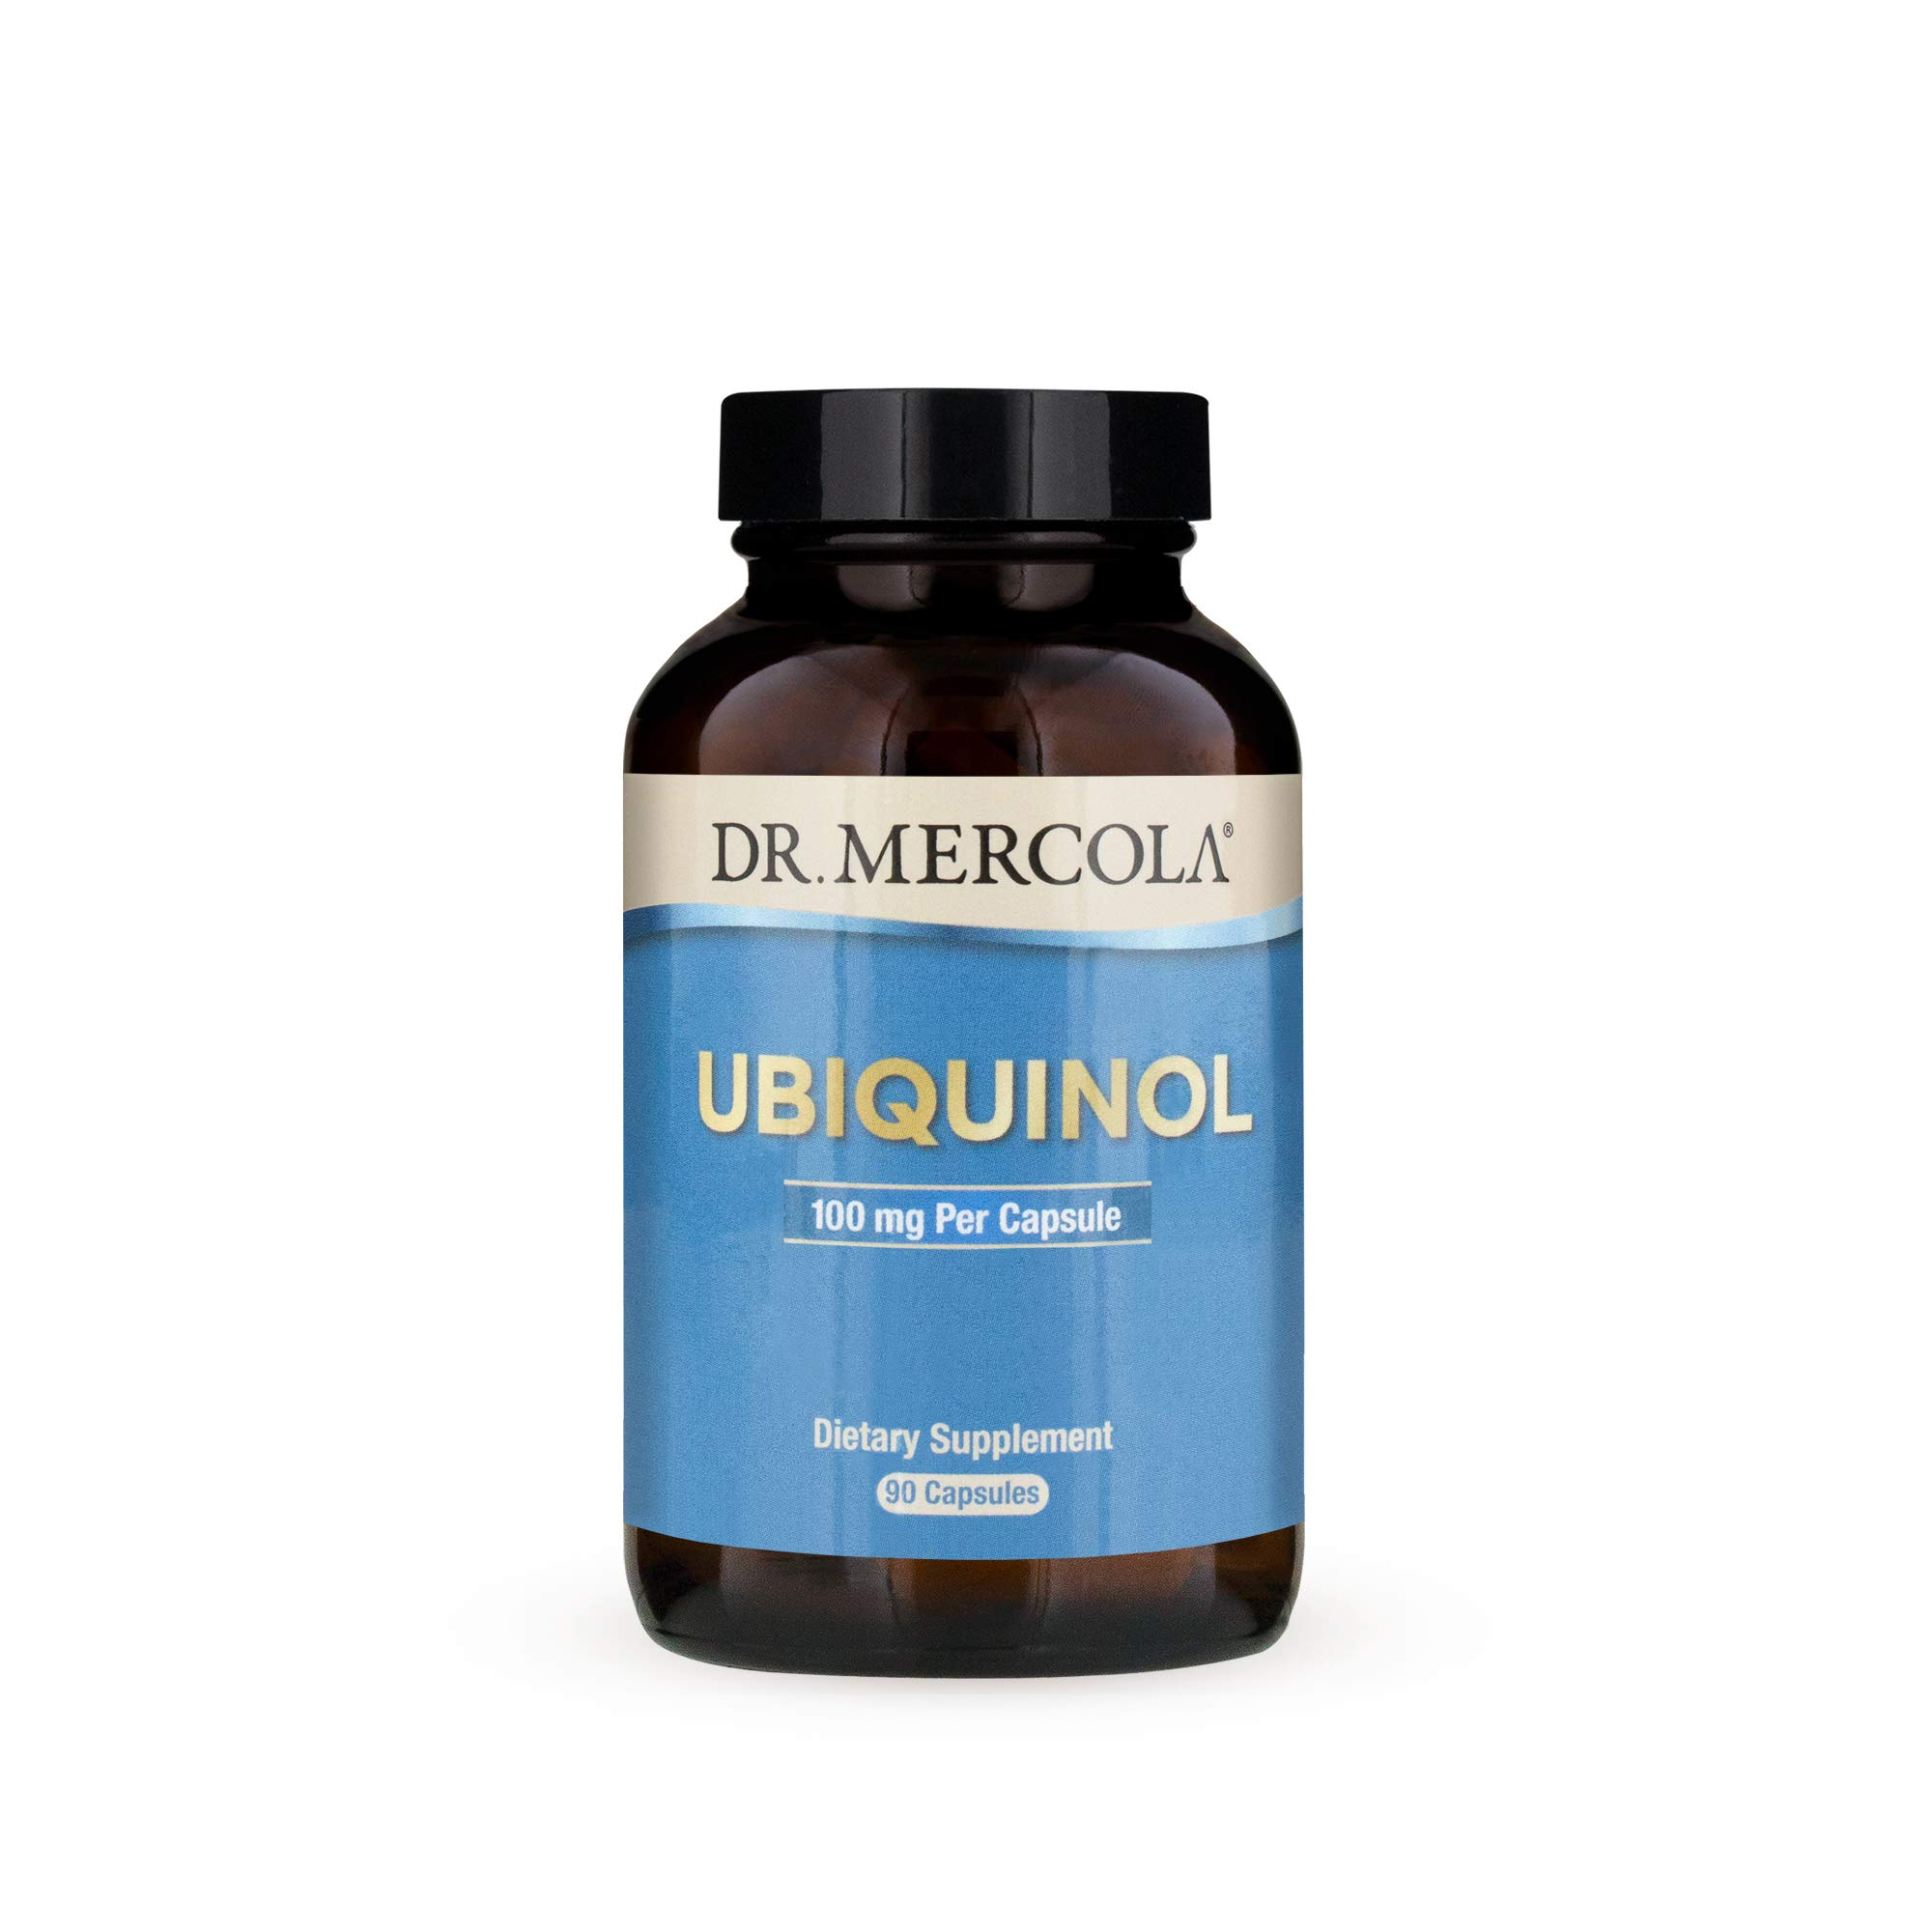 Dr. Mercola, Ubiquinol Dietary Supplement, 100 mg, 90 Servings (90 Capsules), non GMO, Supports Overall Health and Wellness, Soy Free, Gluten Free by Dr. Mercola